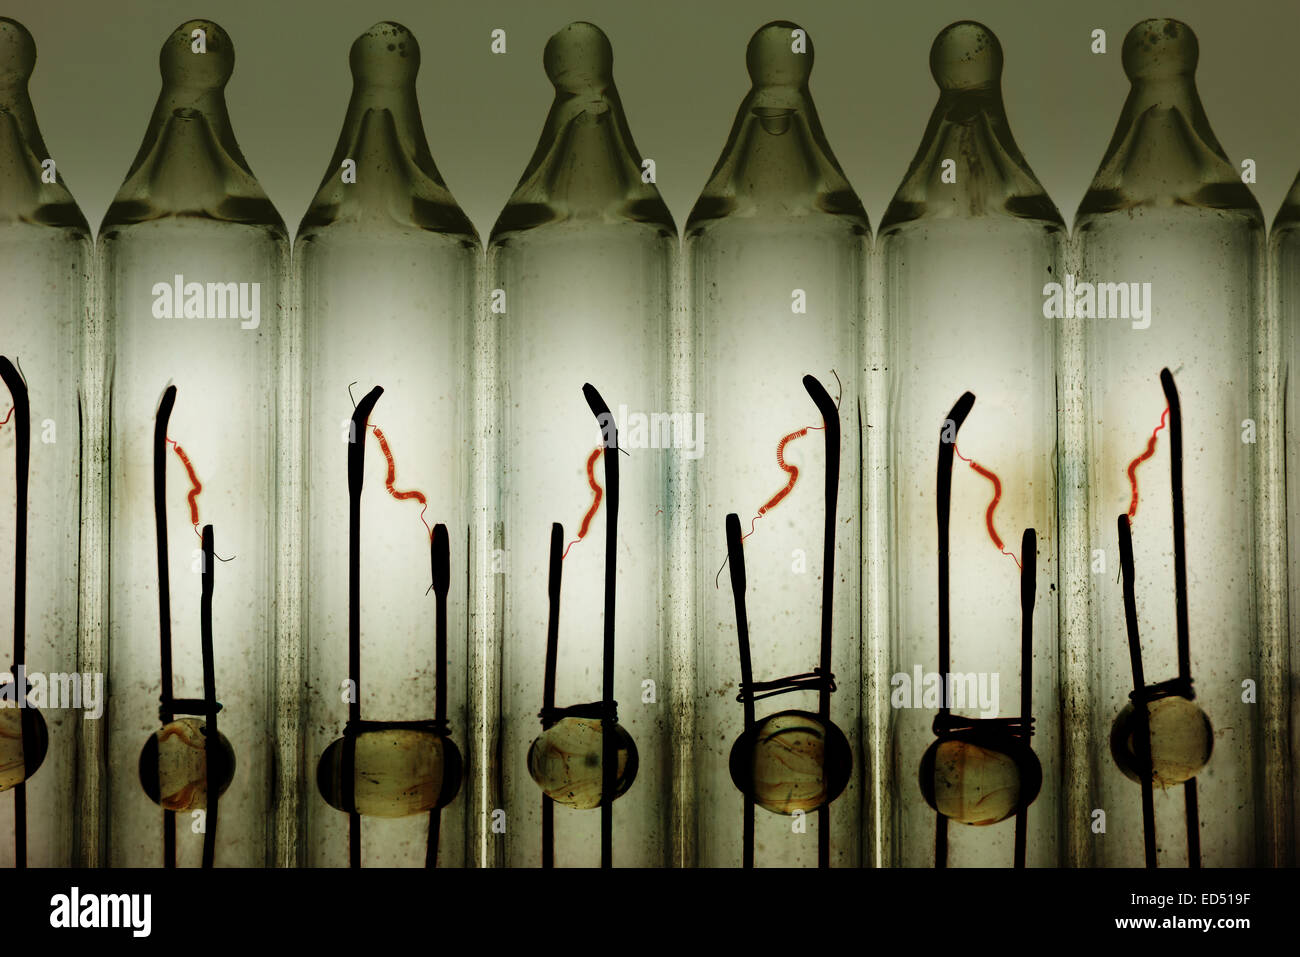 rows of tungsten filament light bulbs showing signs of metal ionization deposits on inside of glass - Stock Image